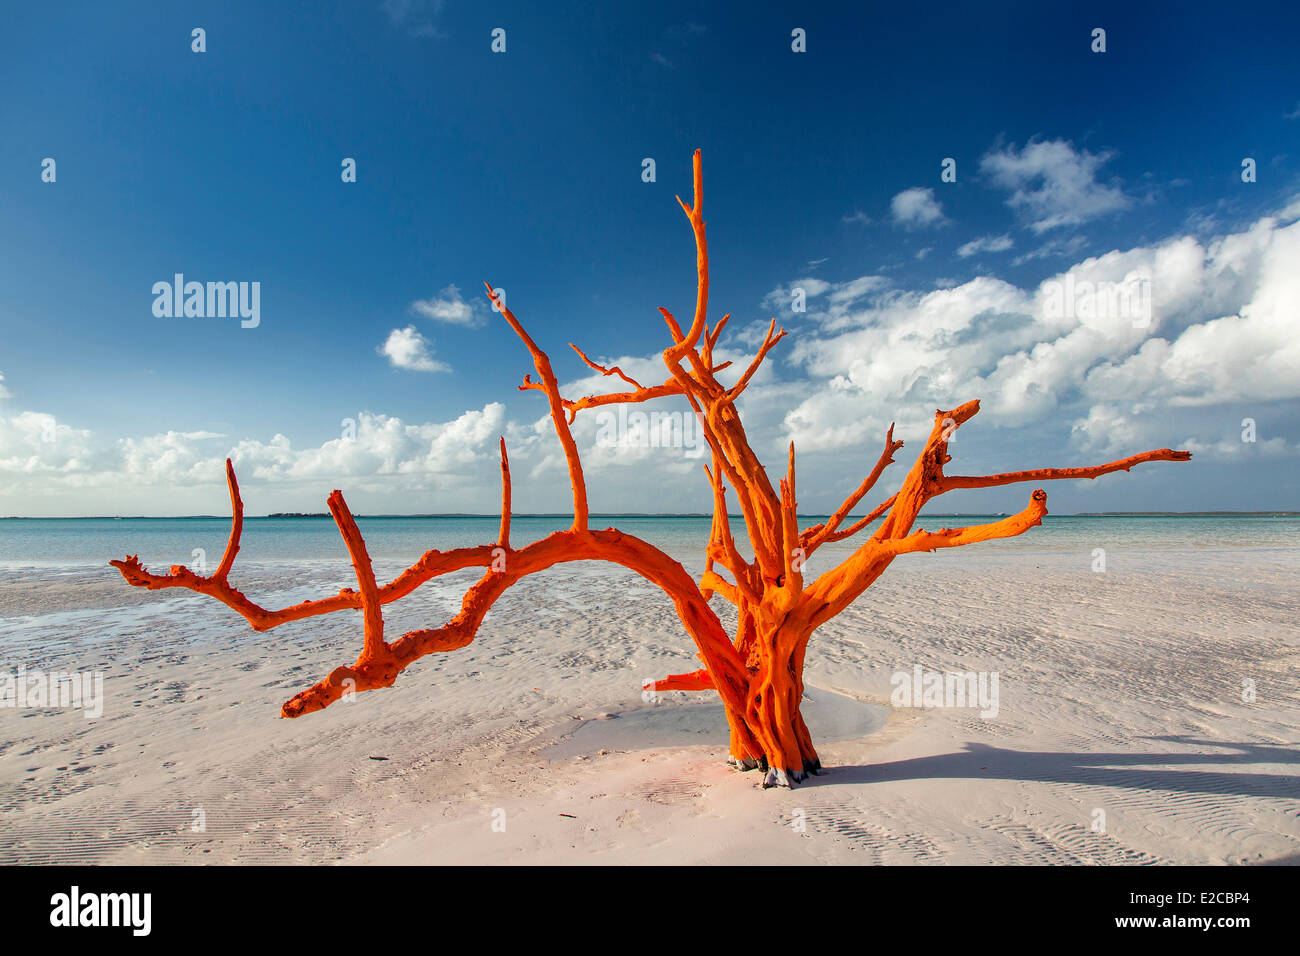 Bahamas, Harbour Island, Lone Tree - Stock Image